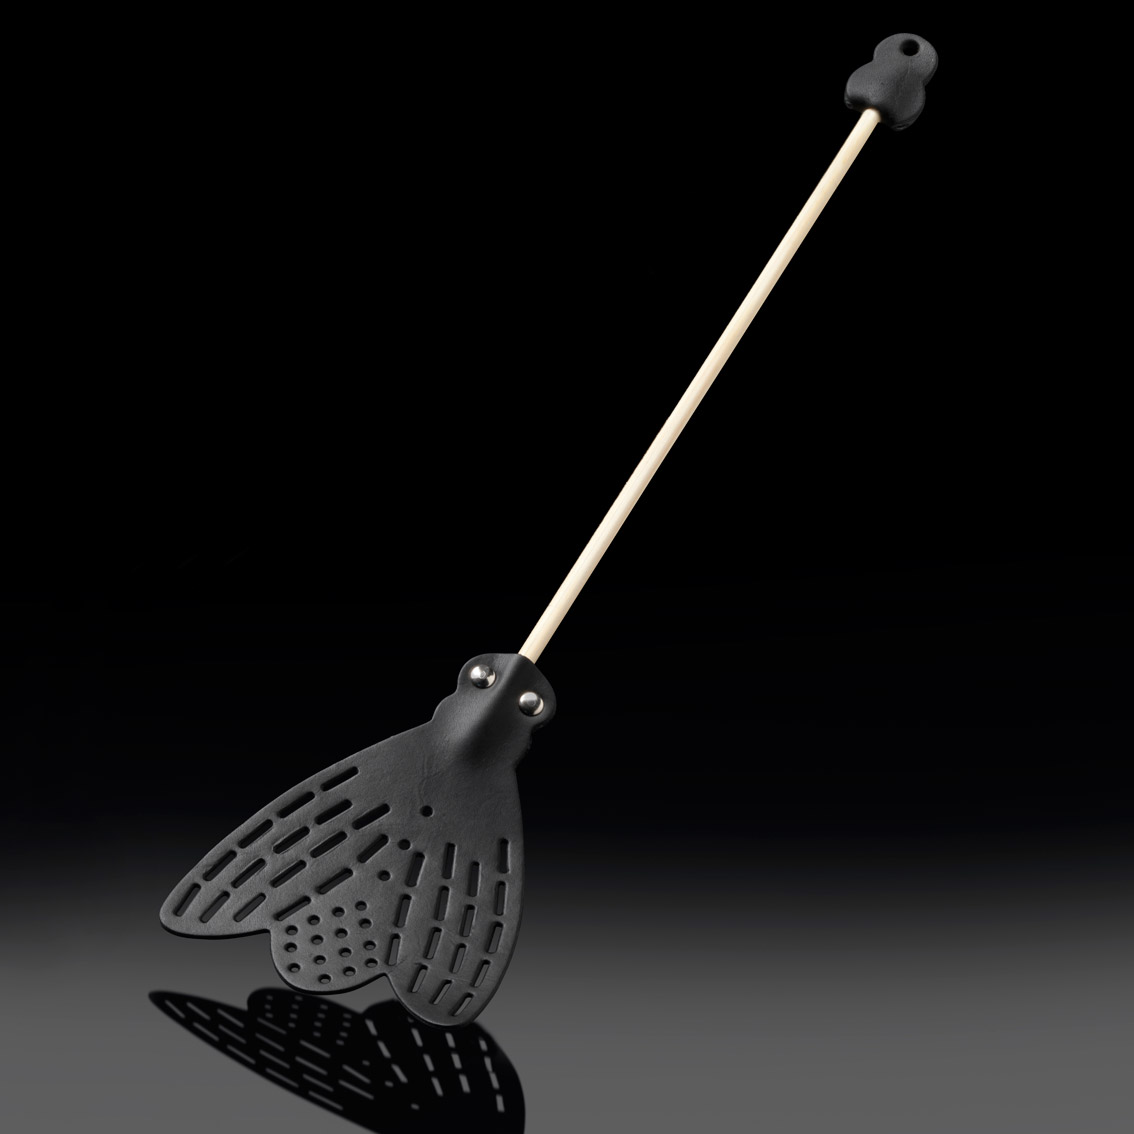 Fly Fly fly swatter black